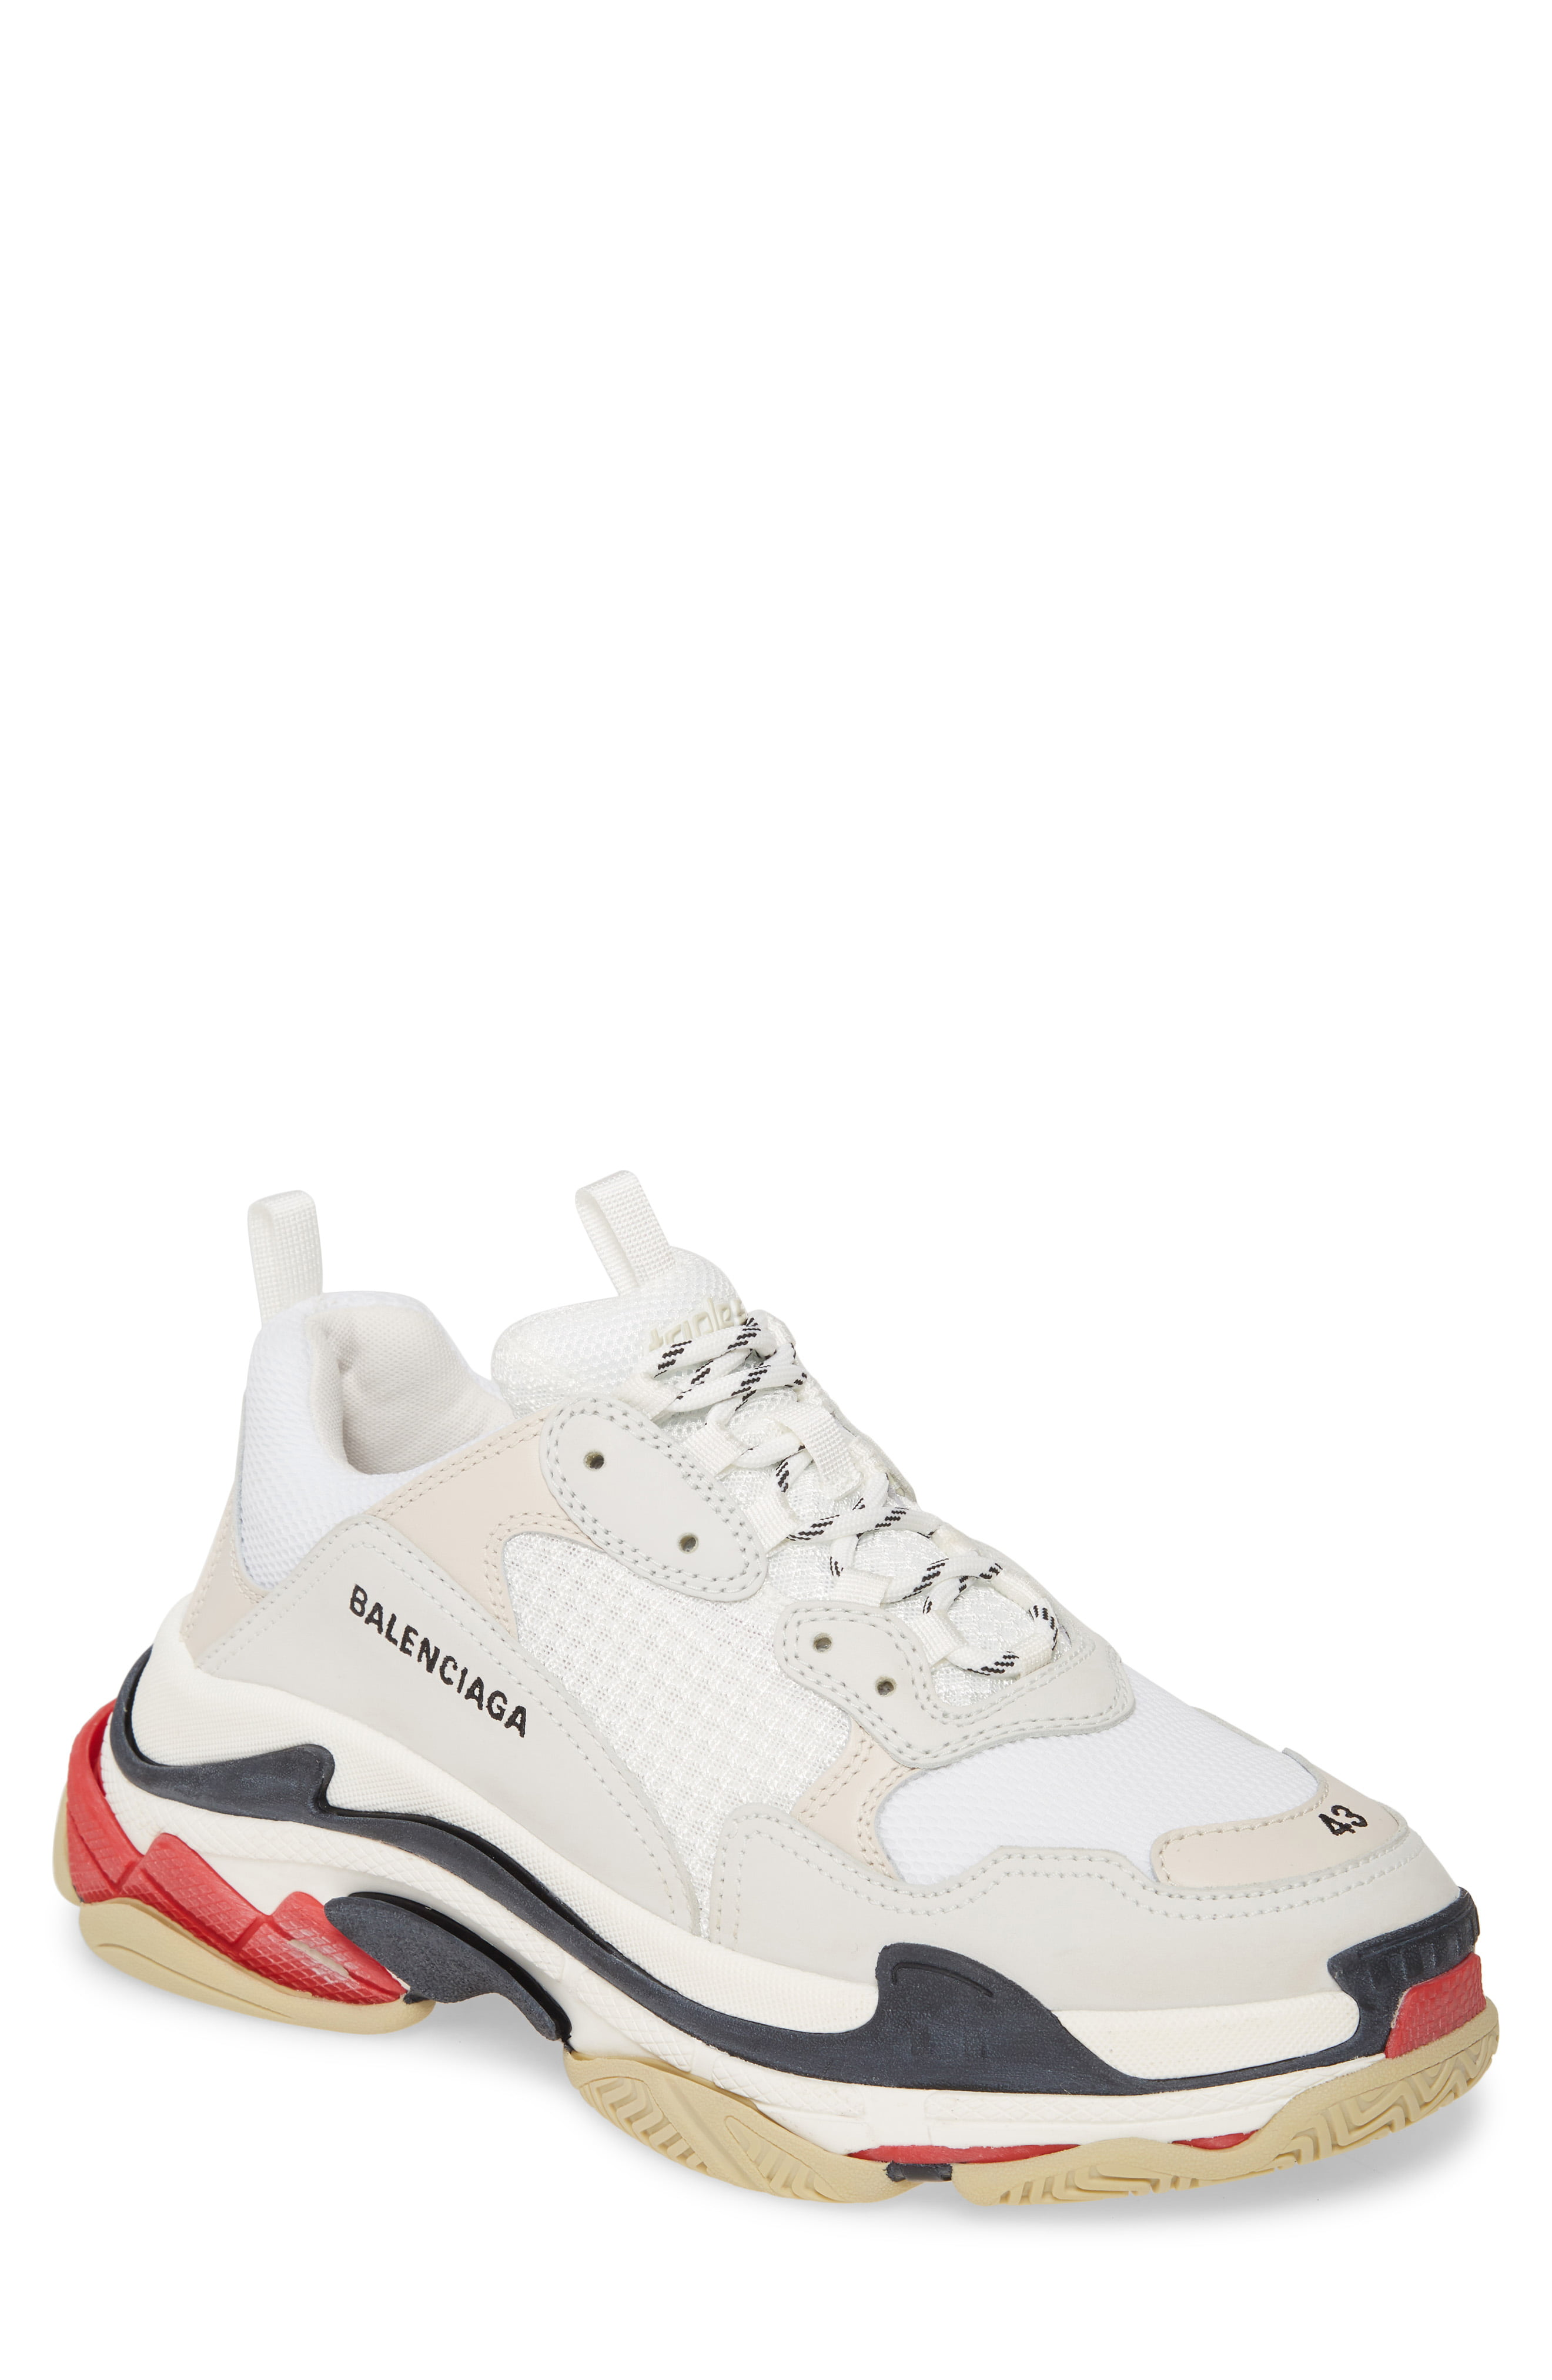 balenciaga at nordstrom